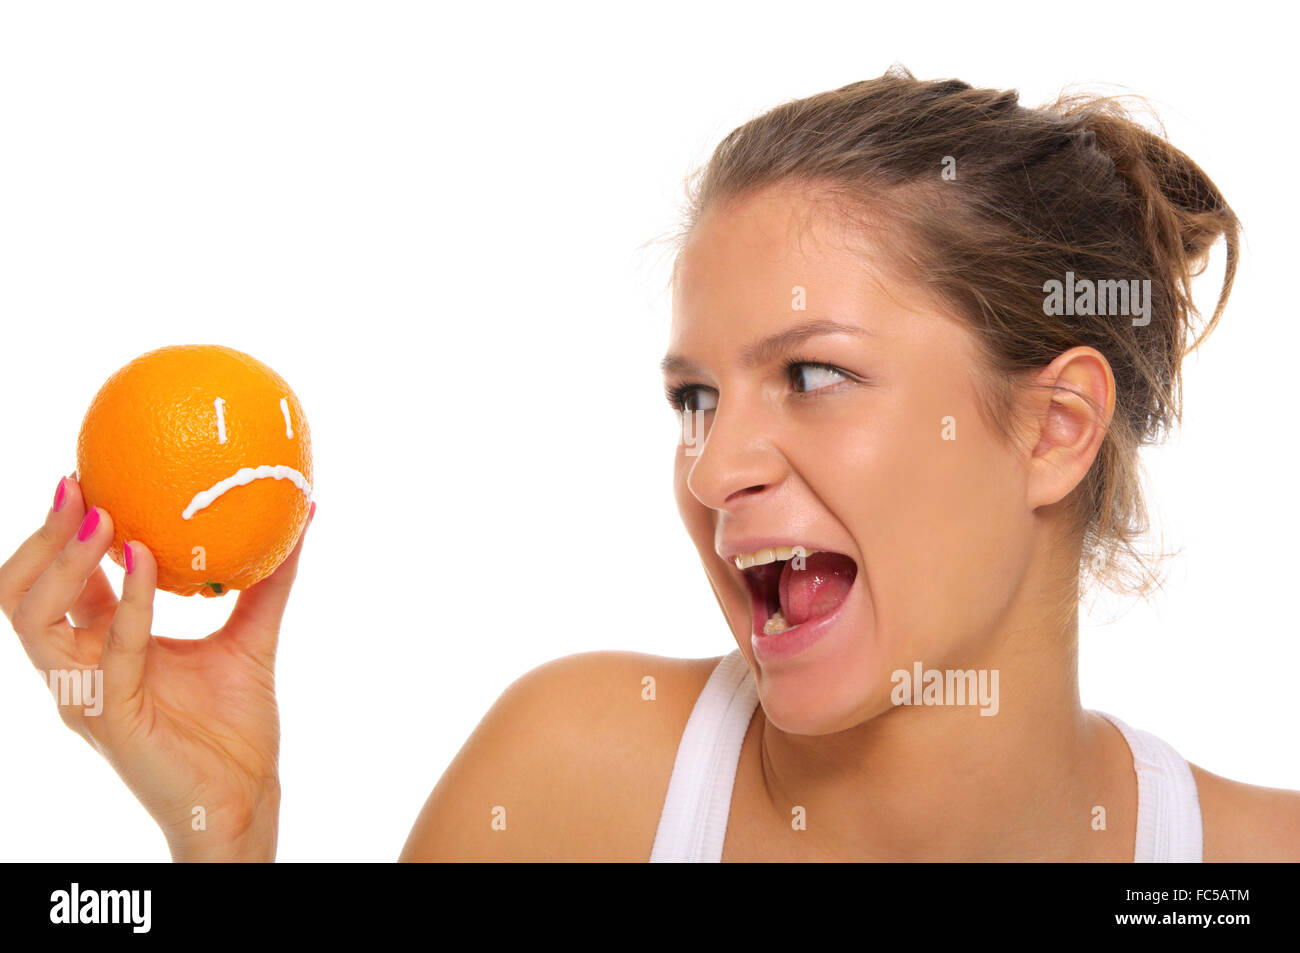 Woman holds orange with insult - Stock Image